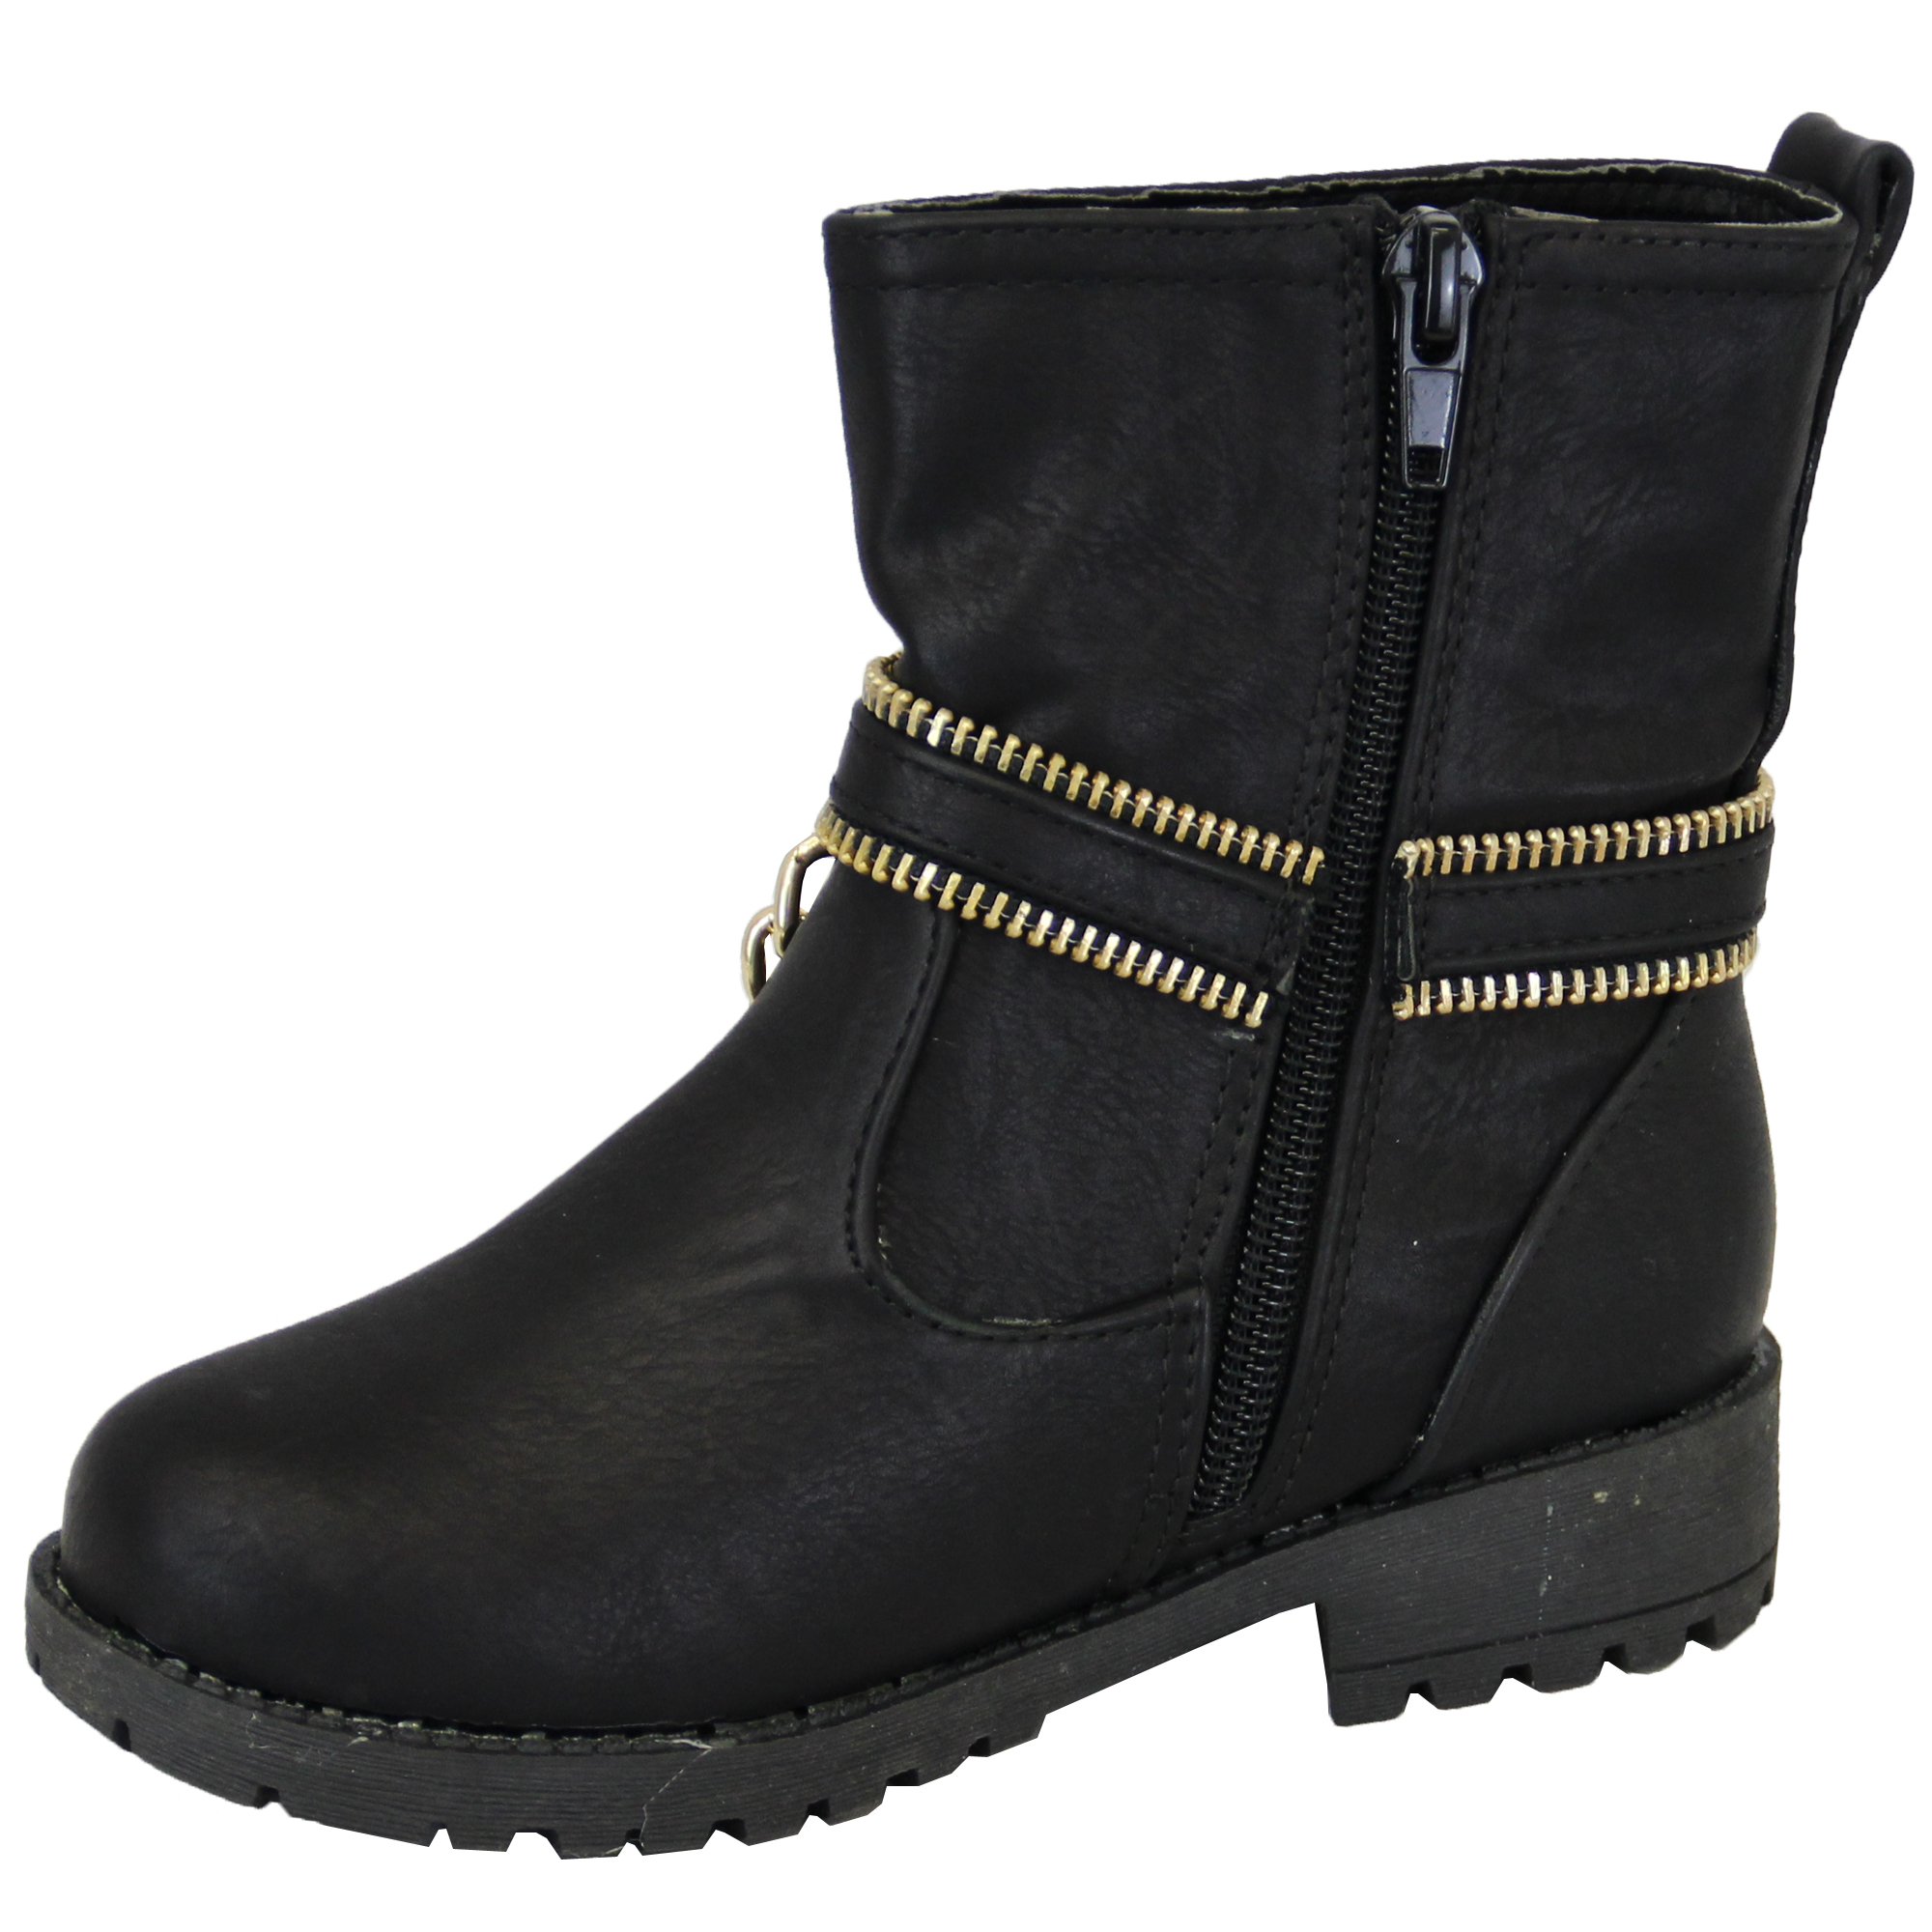 Cheap chelsea boots, Buy Quality womens chelsea boots directly from China short boots Suppliers: New Women Chelsea boots Winter Warm Martin Boots Genuine Real Leather Women's Ankle Boots Shoes Short Boots Woman Enjoy Free Shipping Worldwide! Limited 5/5(4).